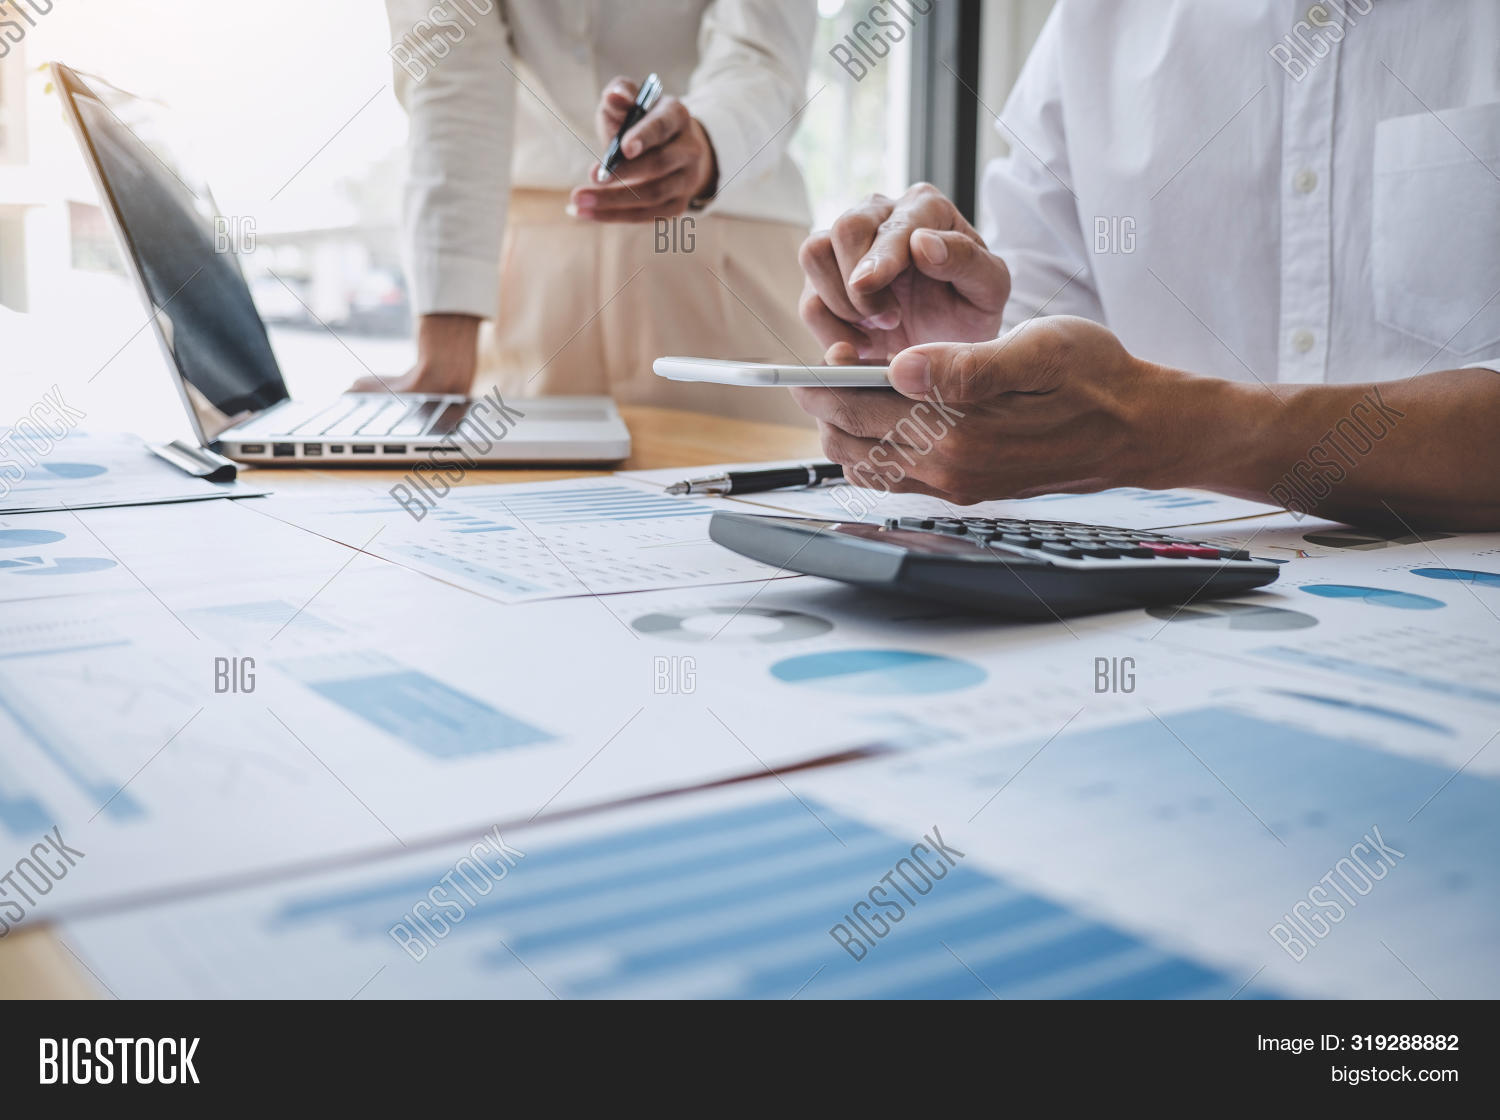 analysis,brainstorming,briefing,business,businessman,businesswoman,colleagues,communication,conference,connection,consultation,consulting,conversation,corporate,coworker,data,discussion,document,entrepreneur,executive,finance,financial,graph,group,interaction,investment,lawyer,leadership,looking,marketing,meeting,networking,occupation,office,organization,paperwork,people,planning,pointing,presentation,professional,seminar,strategy,talking,team,teamwork,technology,togetherness,working